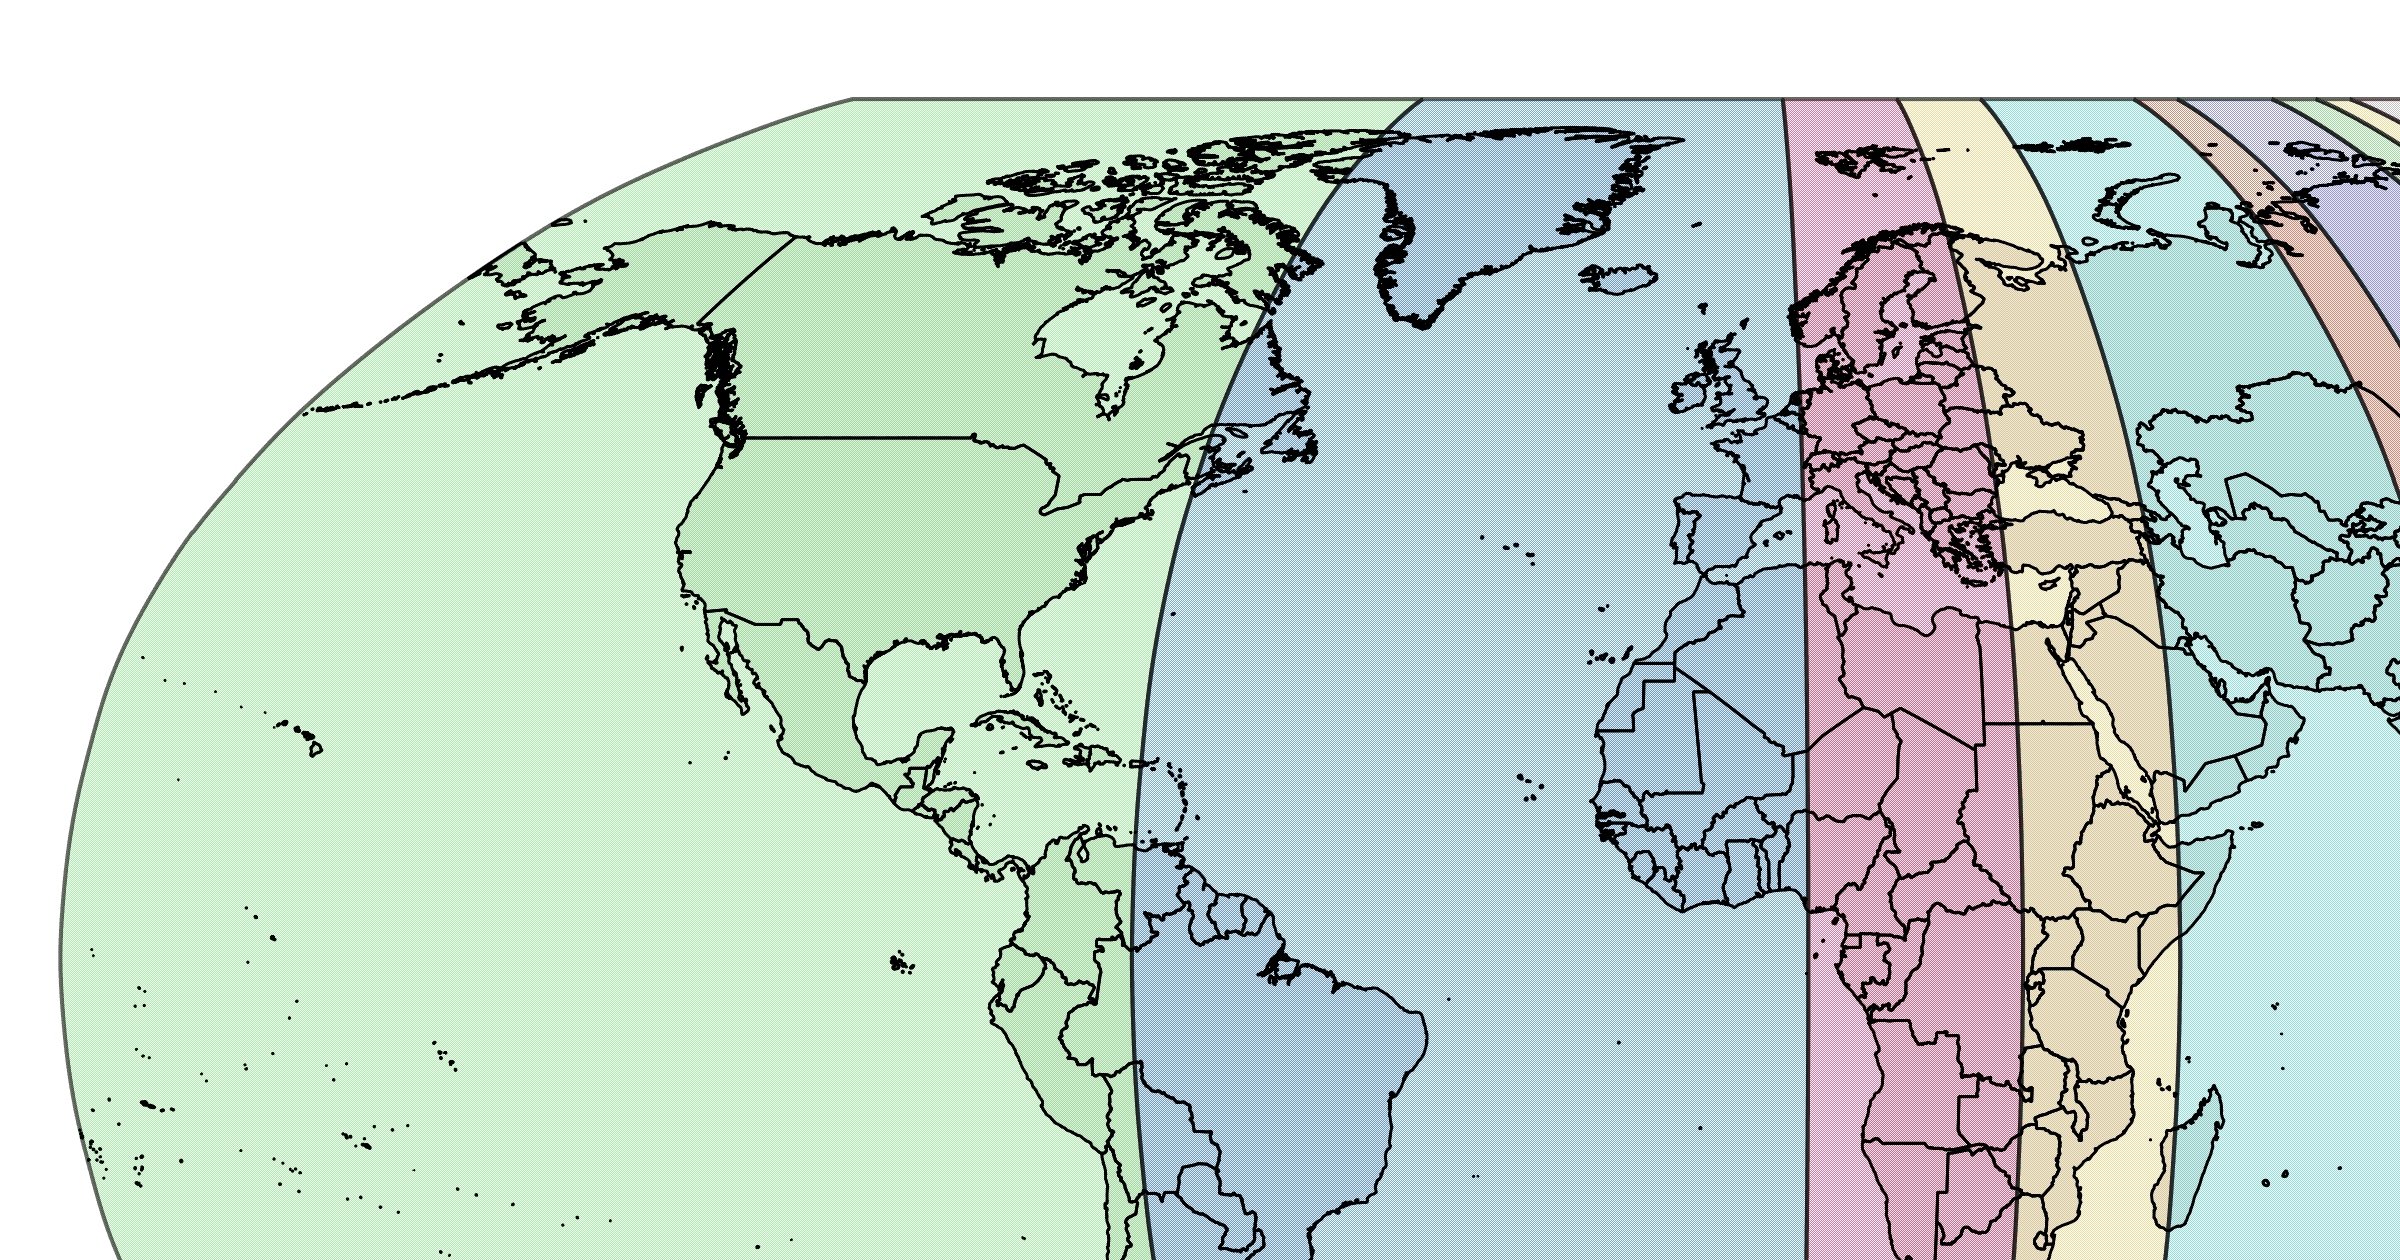 A Map Of The World's Population Divided Into 10 Equal Sections